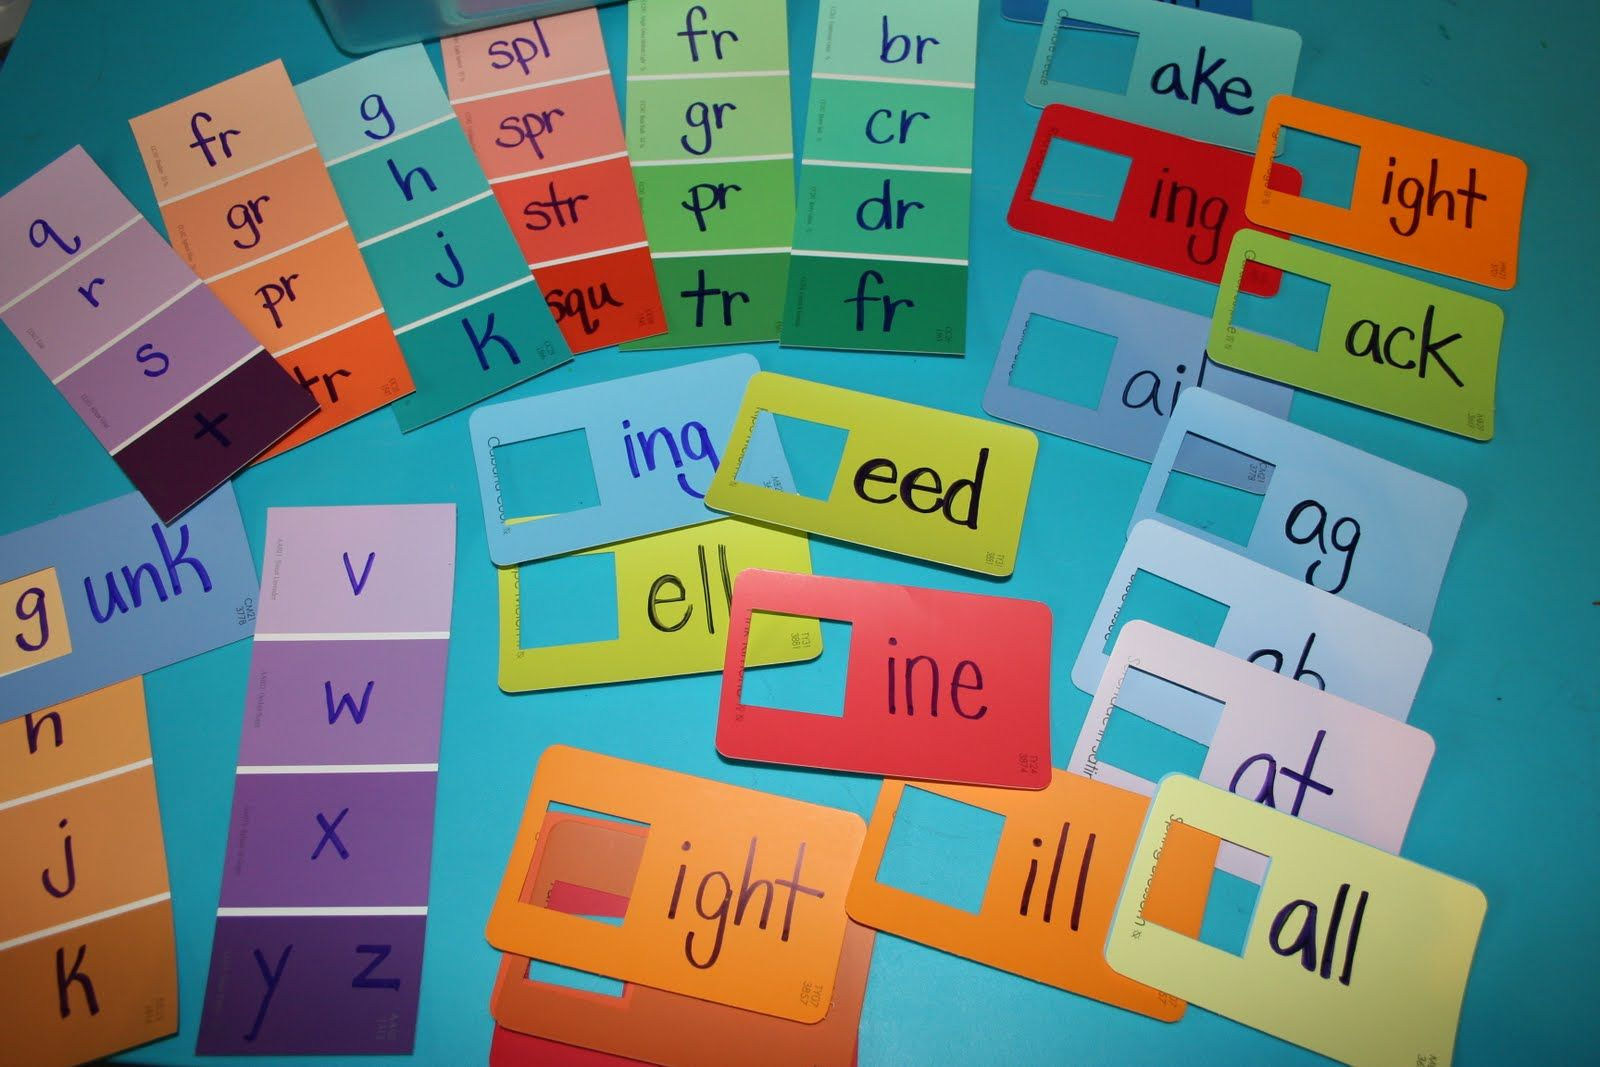 spelling with paint chips!